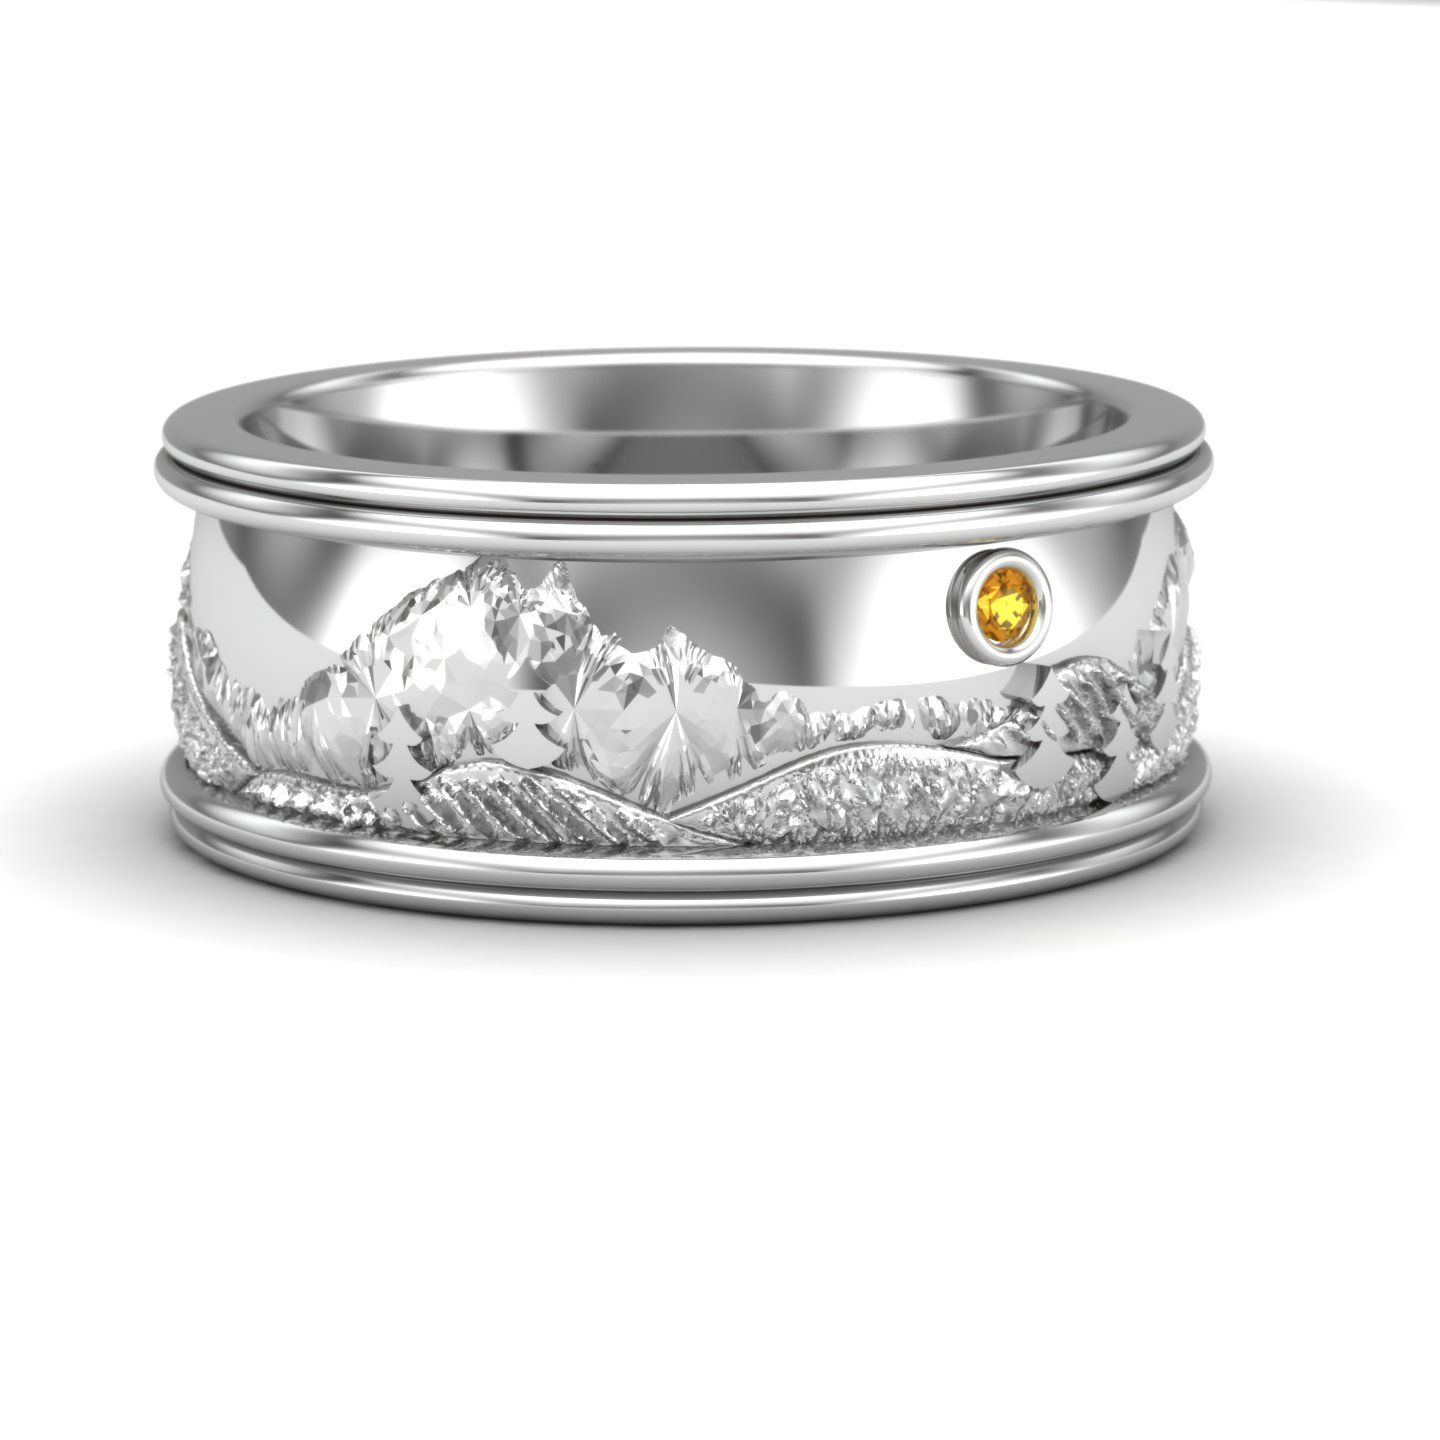 Rocky Mountain Wedding Band in Sterling Silver | Jewelry | Pinterest ...